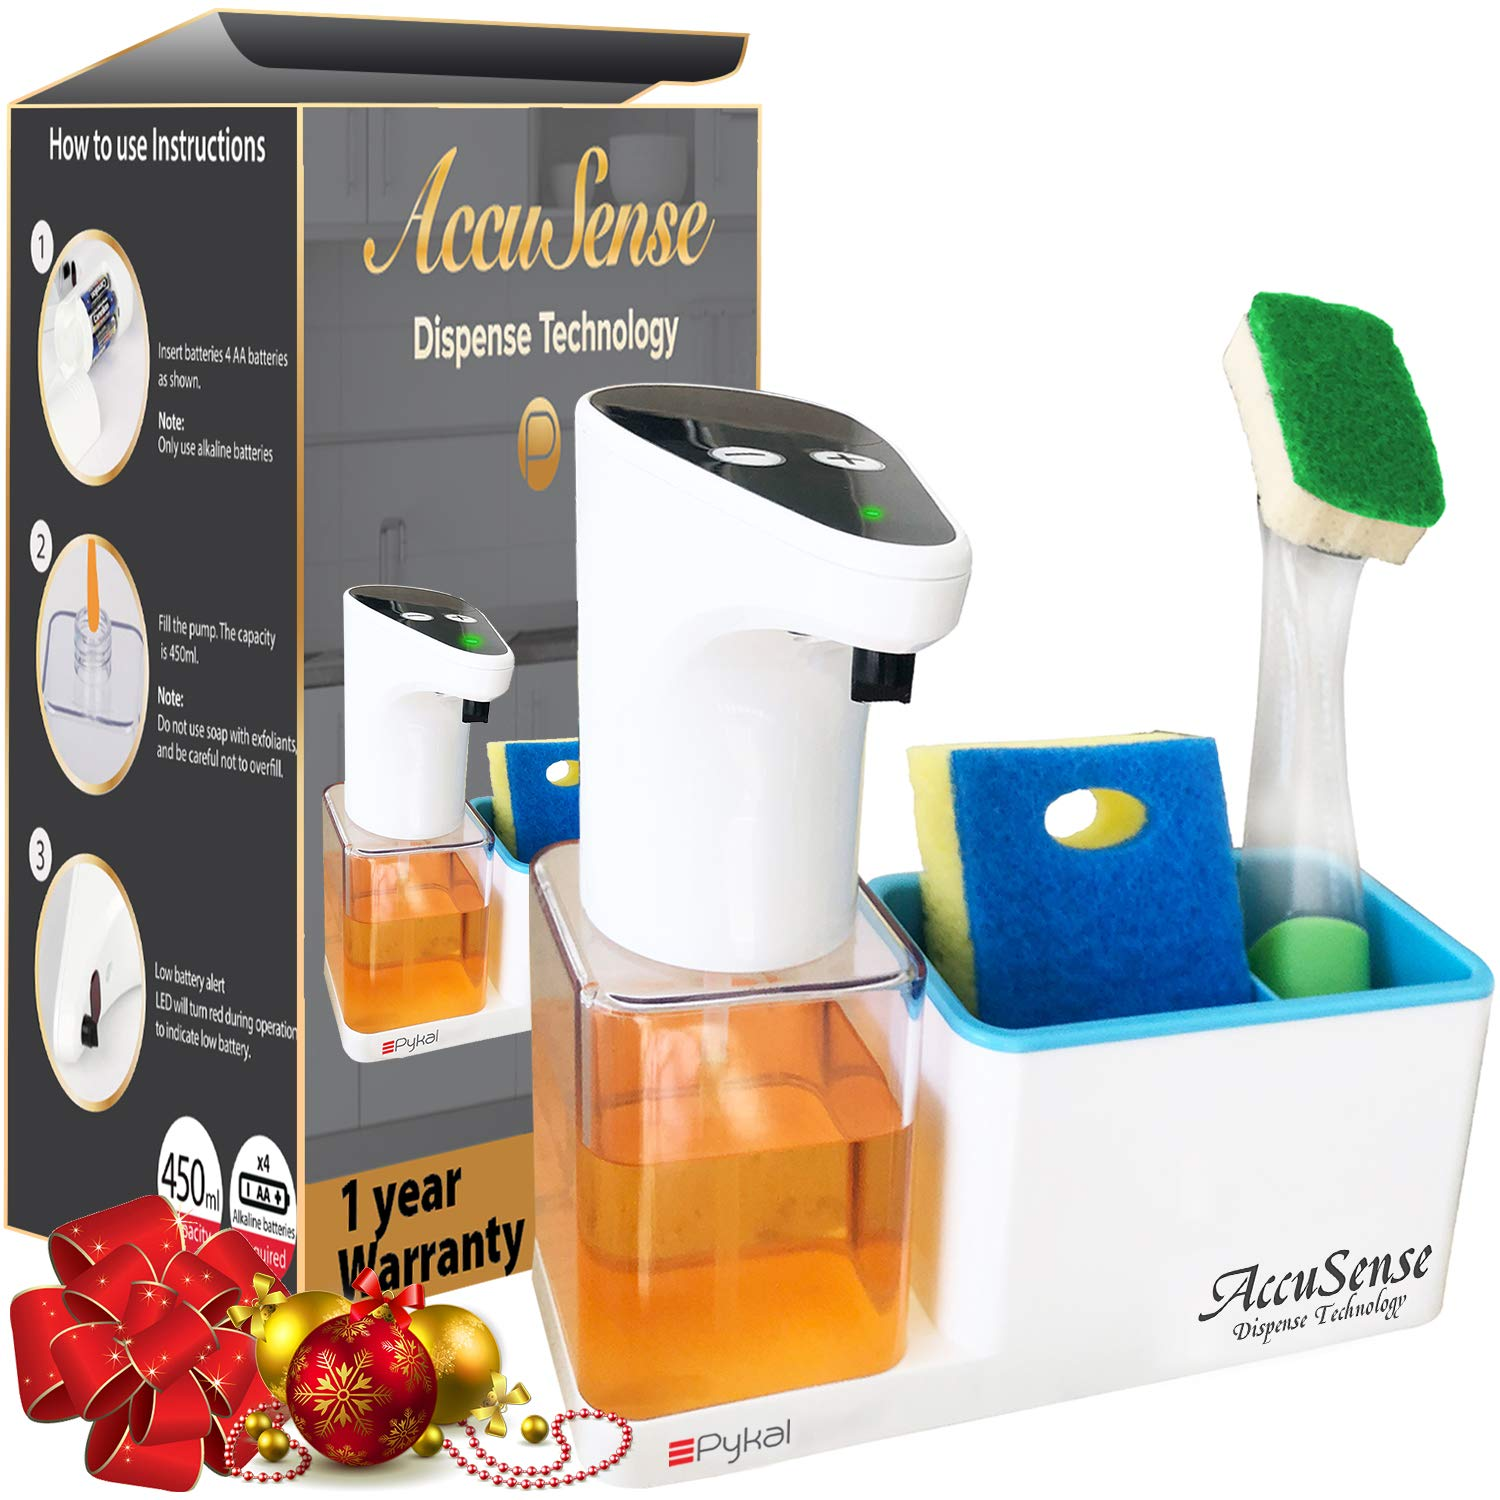 Premium 15 oz Kitchen Soap Dispenser with Sponge Holder | Automatic and Touchless Accusense Dispense Technology | 1 Year Warranty | Perfect Packaging for Christmas by Pykal KIT-SD-002